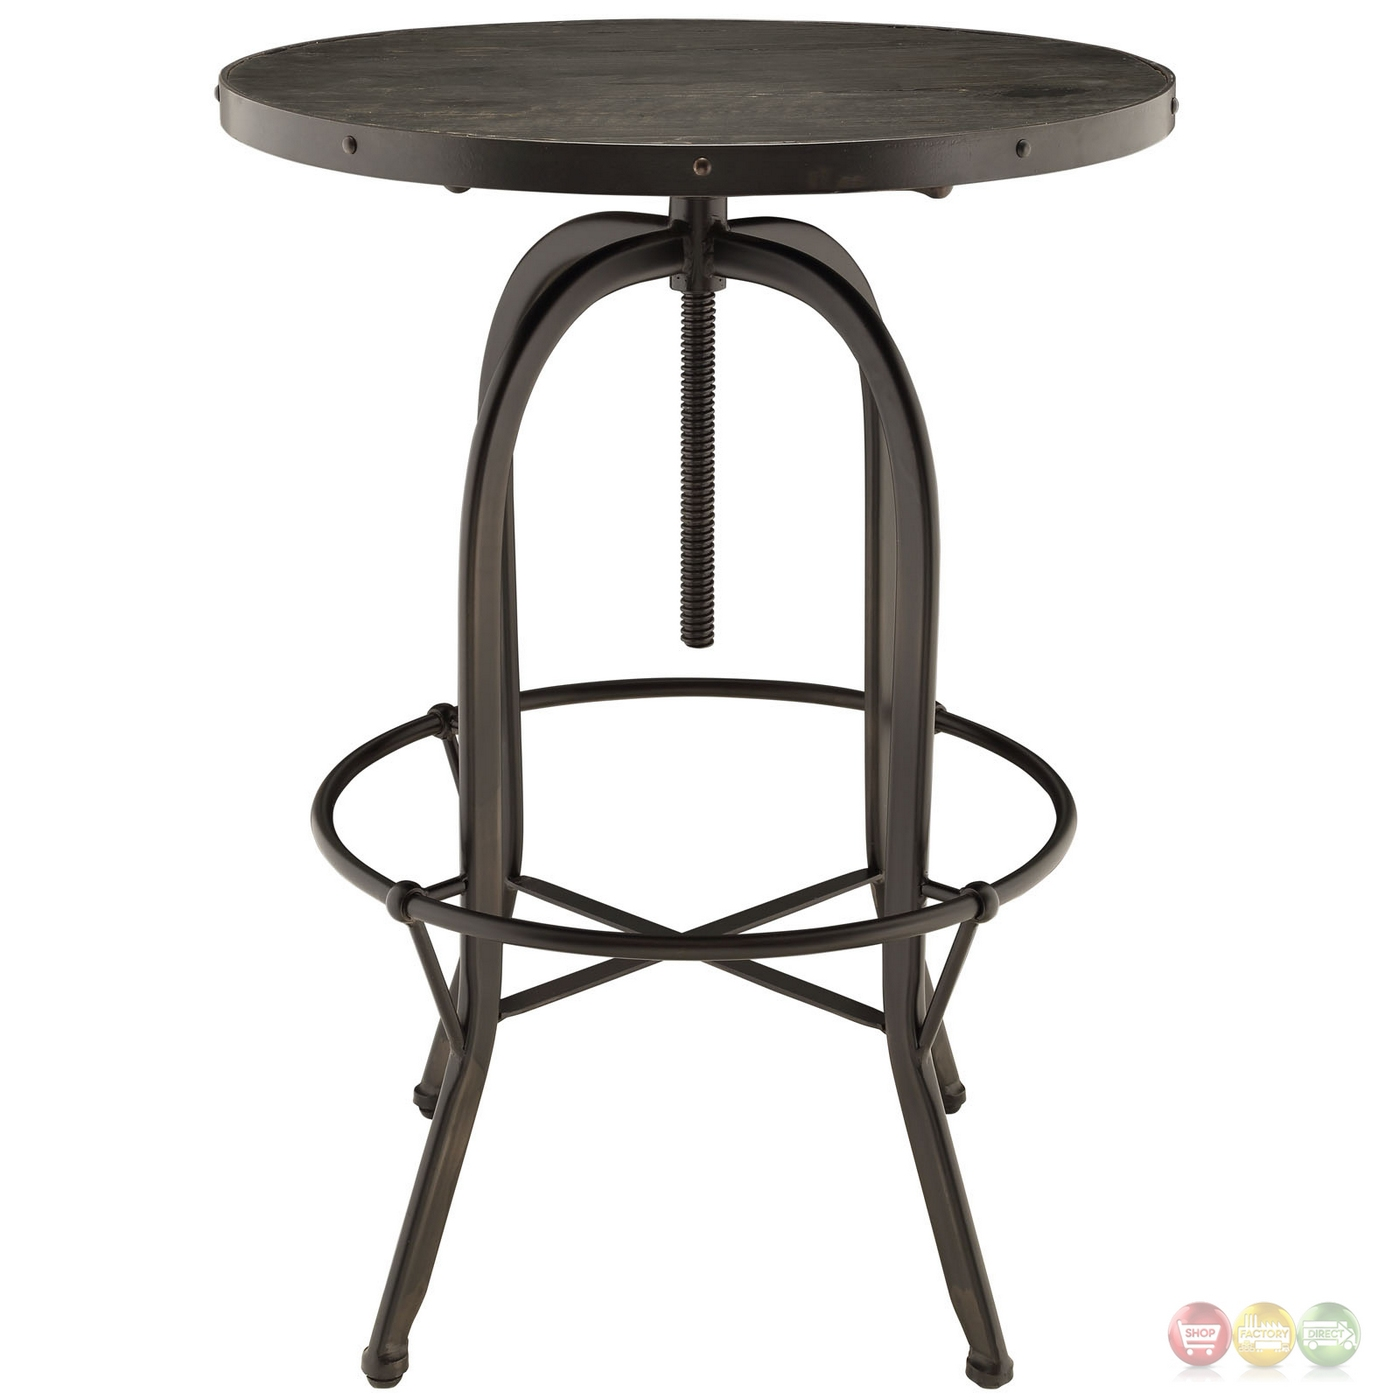 Sylvan industrial modern 23 5 round wood top bar table black - Table bar industriel ...